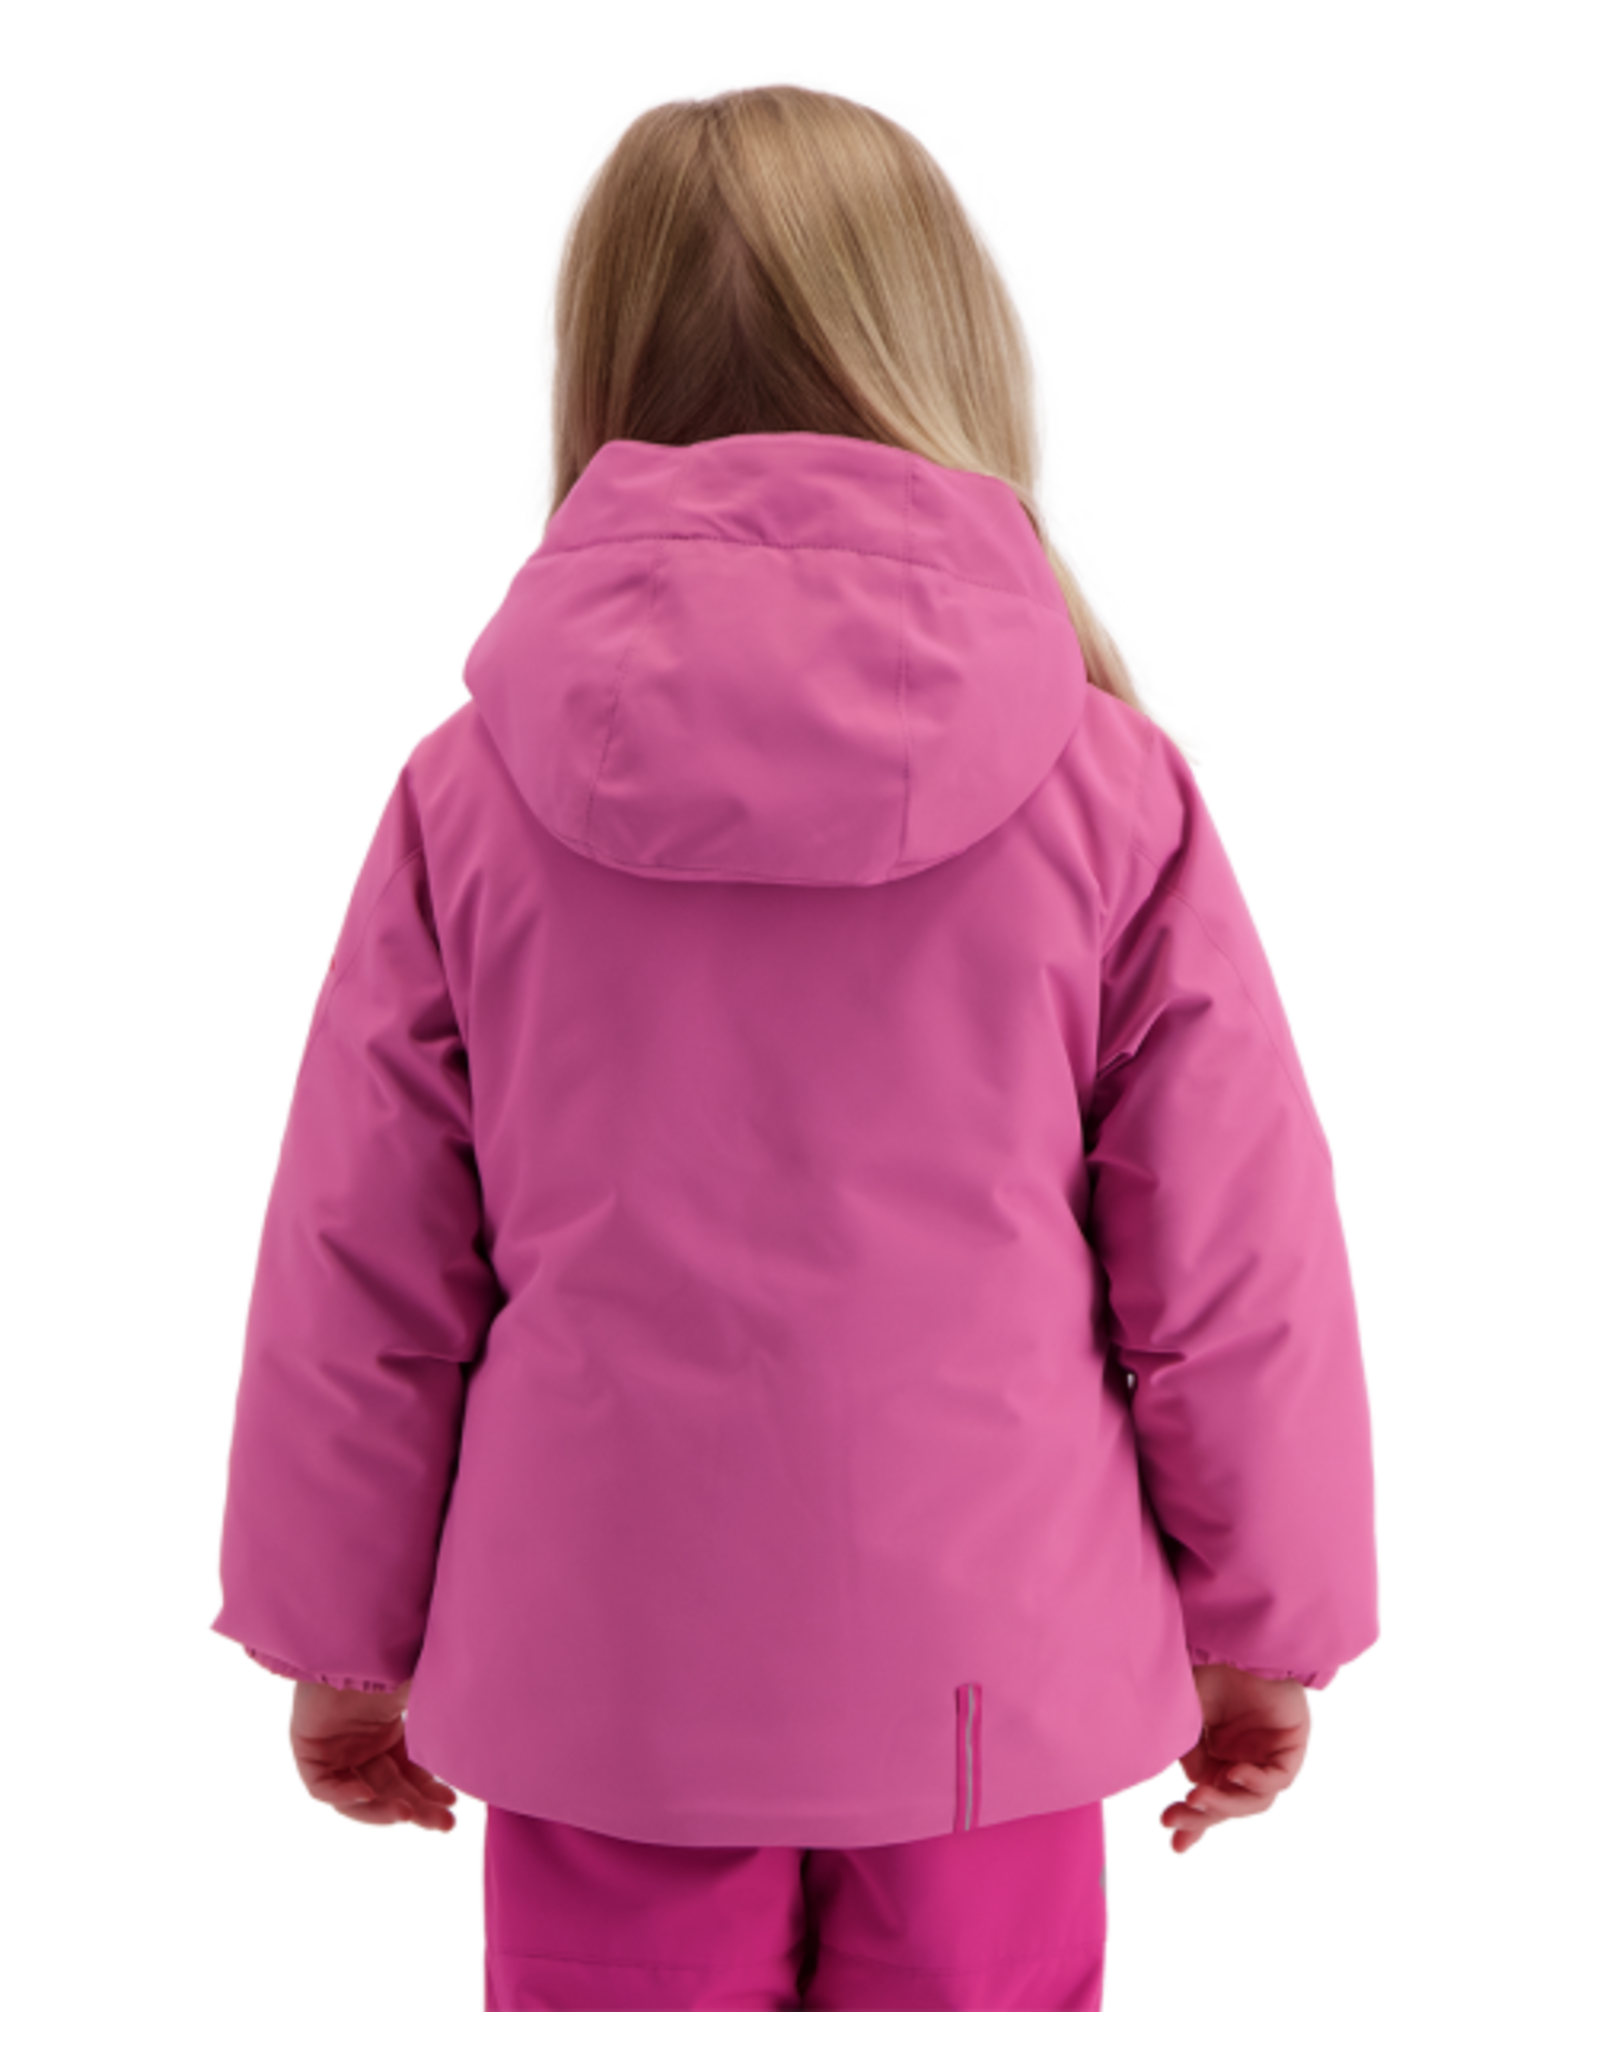 Obermeyer Obermeyer Kid Girl's Glam Jacket